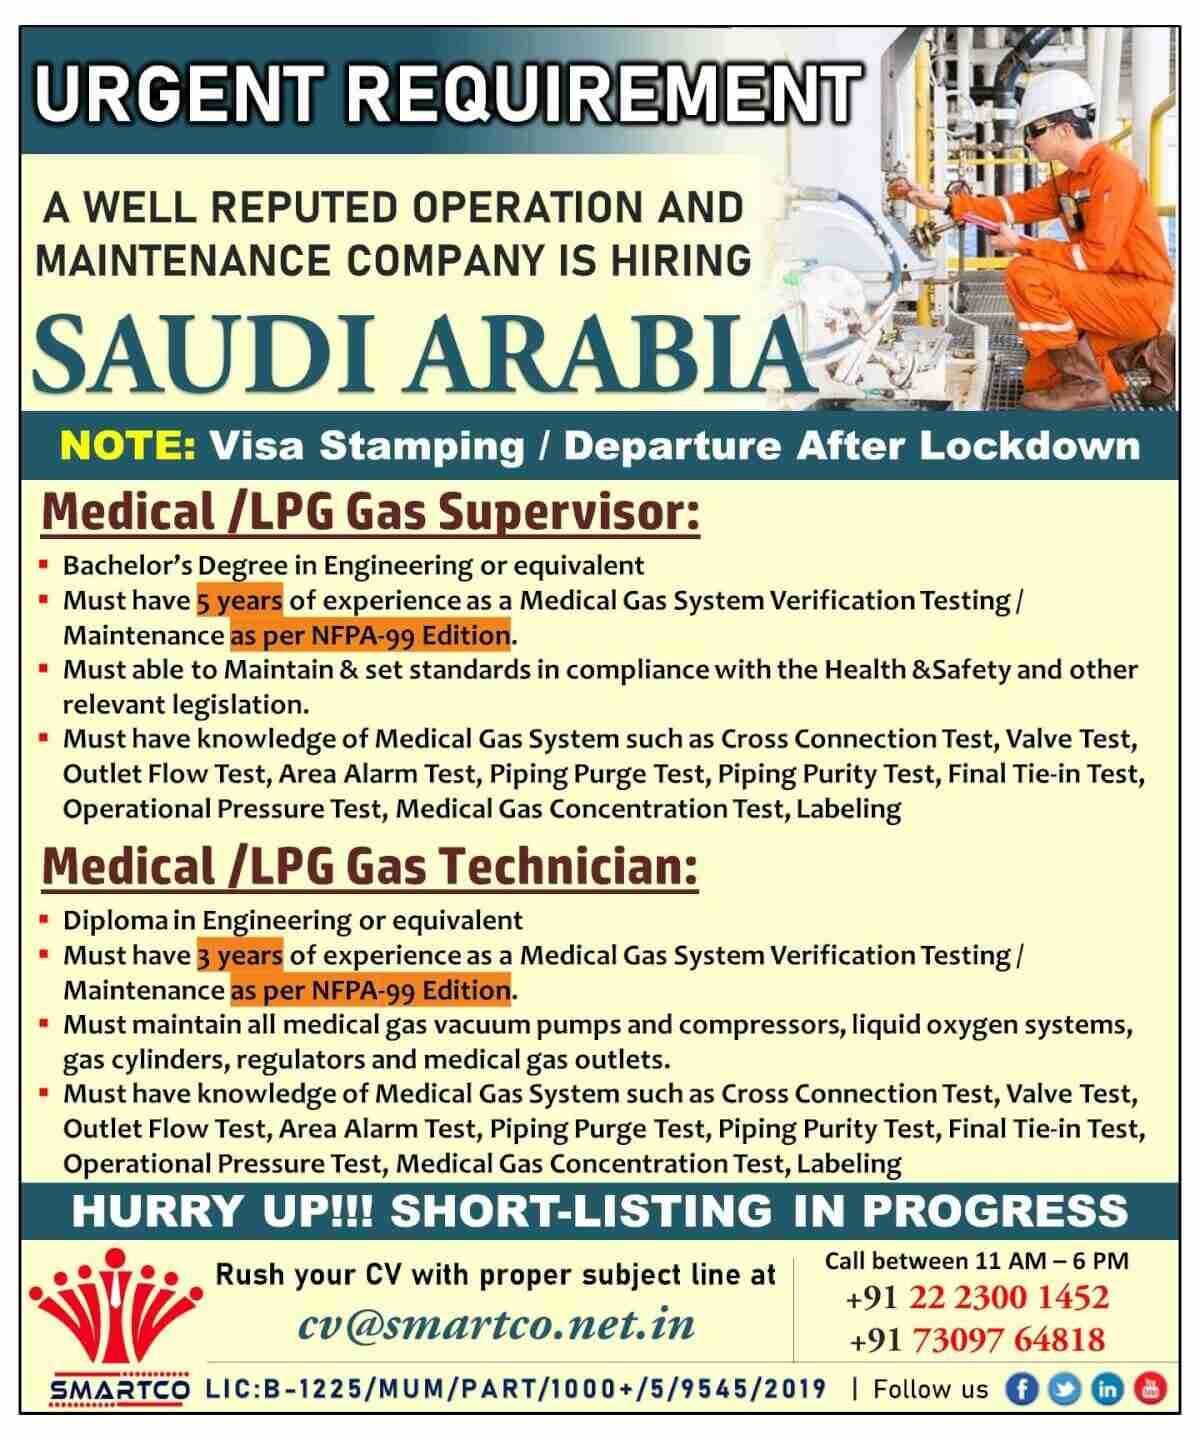 Saudi employment news – Urgent requirement for maintenance company